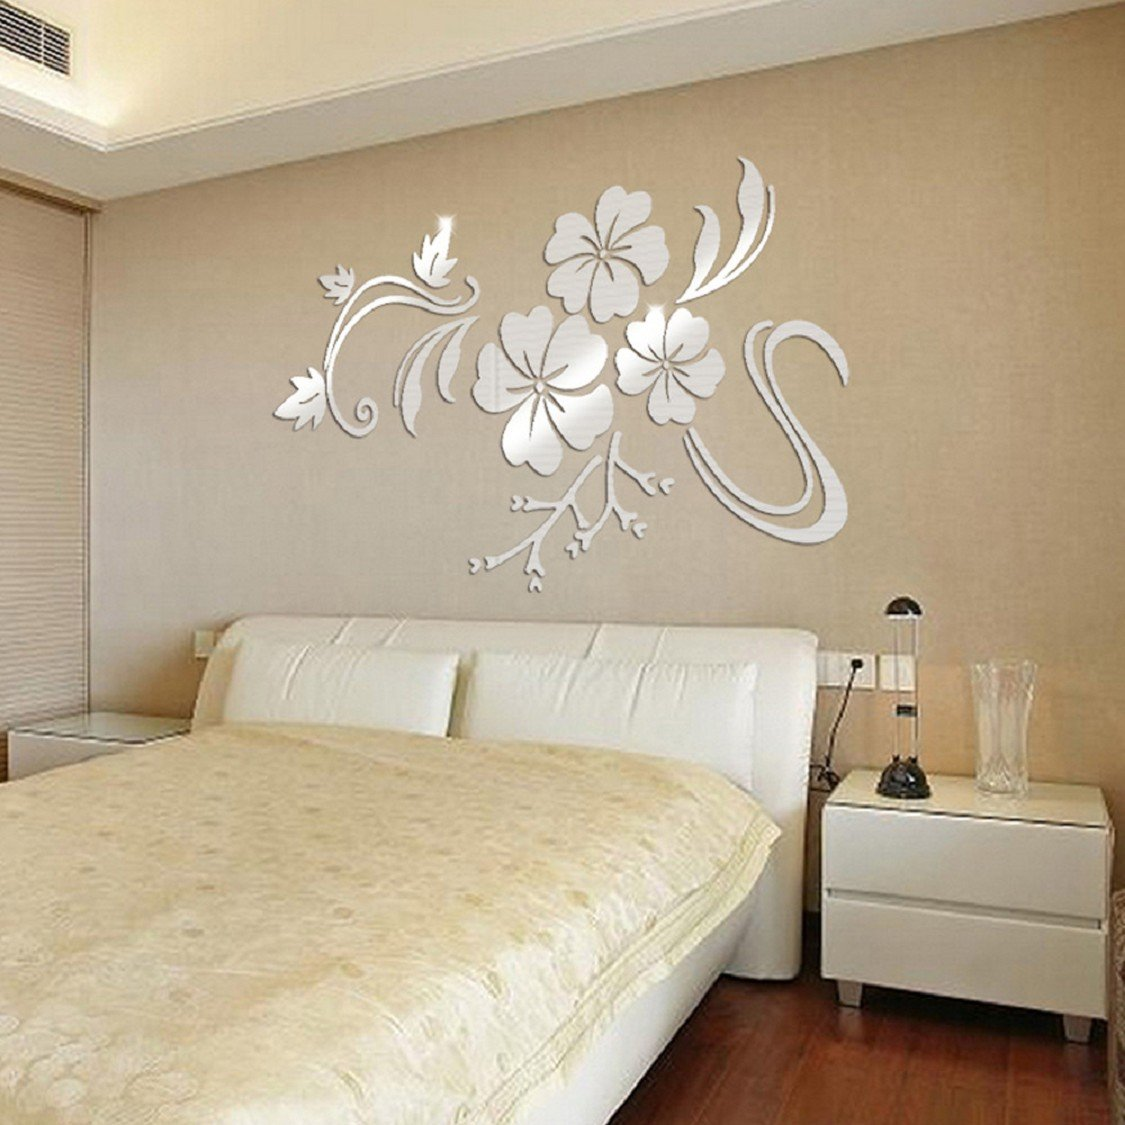 Ikevan 1Set Acrylic Art 3D Mirror Flower Wall Stickers DIY Home Wall Room  Decals Decor Sofa TV Setting Wall Removable Wall Stickers 78X60cm (Sliver)  ...